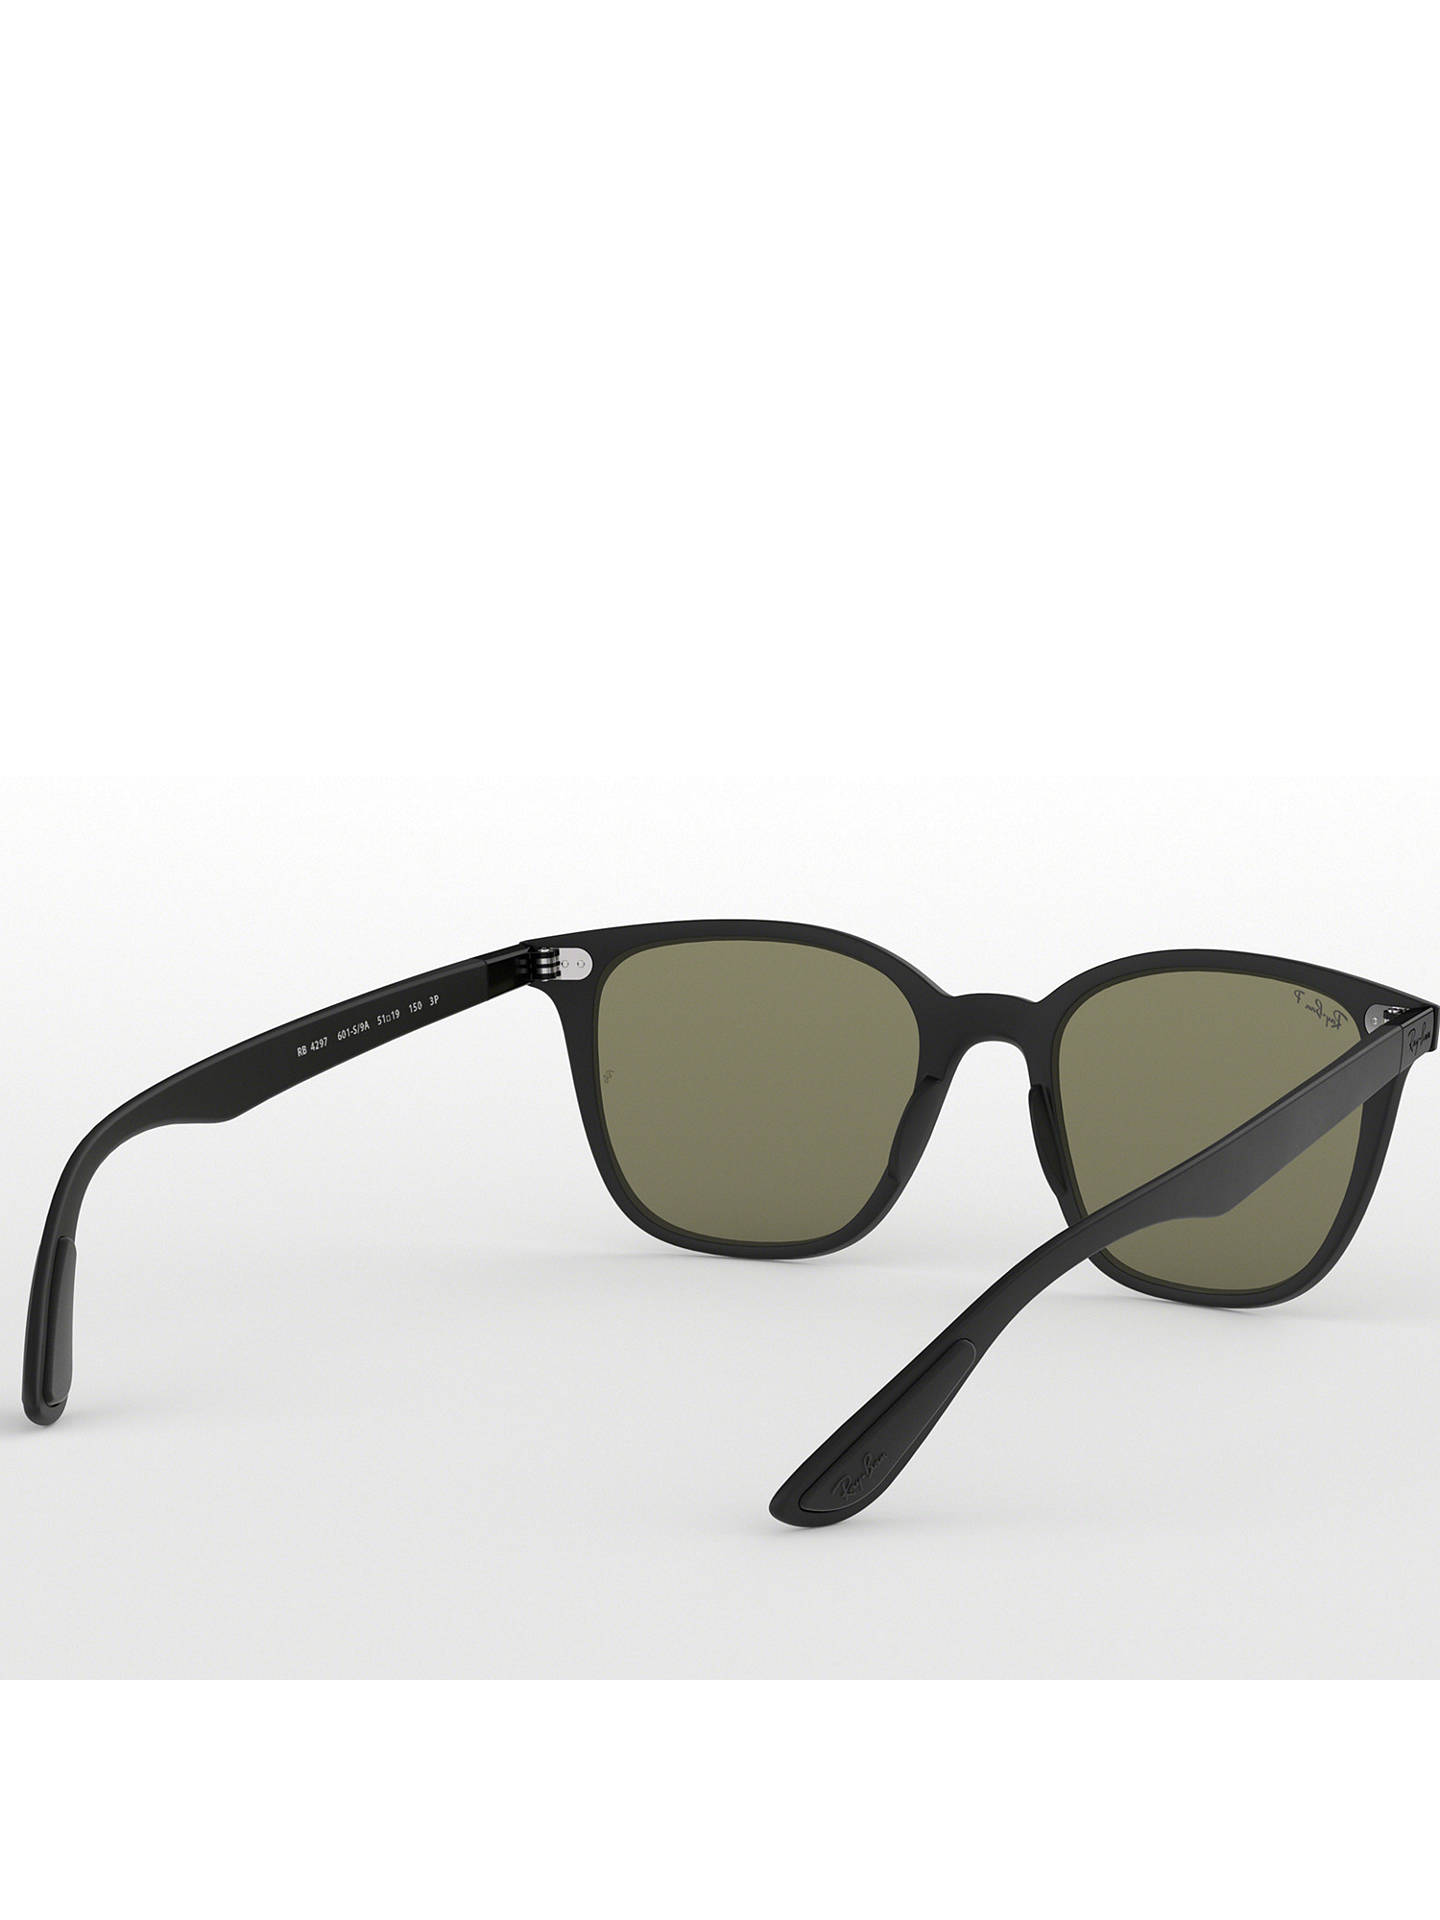 BuyRay-Ban RB4297 Wayfarer Sunglasses, Black/Green Online at johnlewis.com